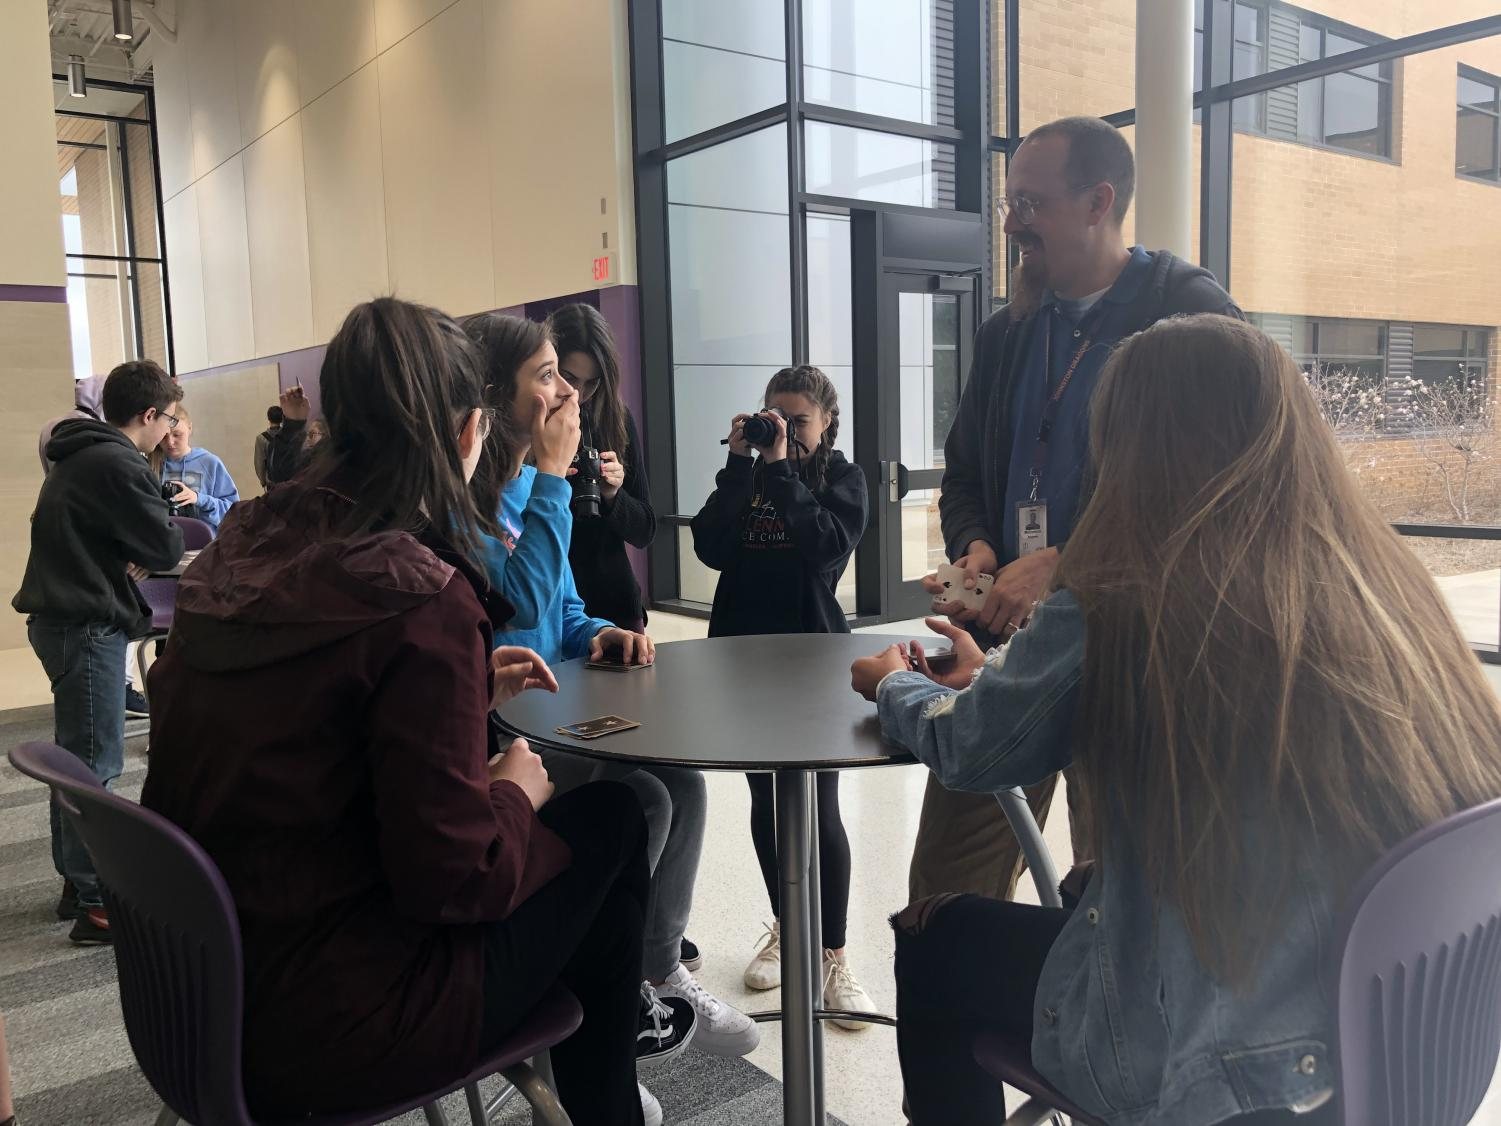 Art teacher Andrew McCormick teaches digital photography students how to play various card games while others take portrait photos of them.